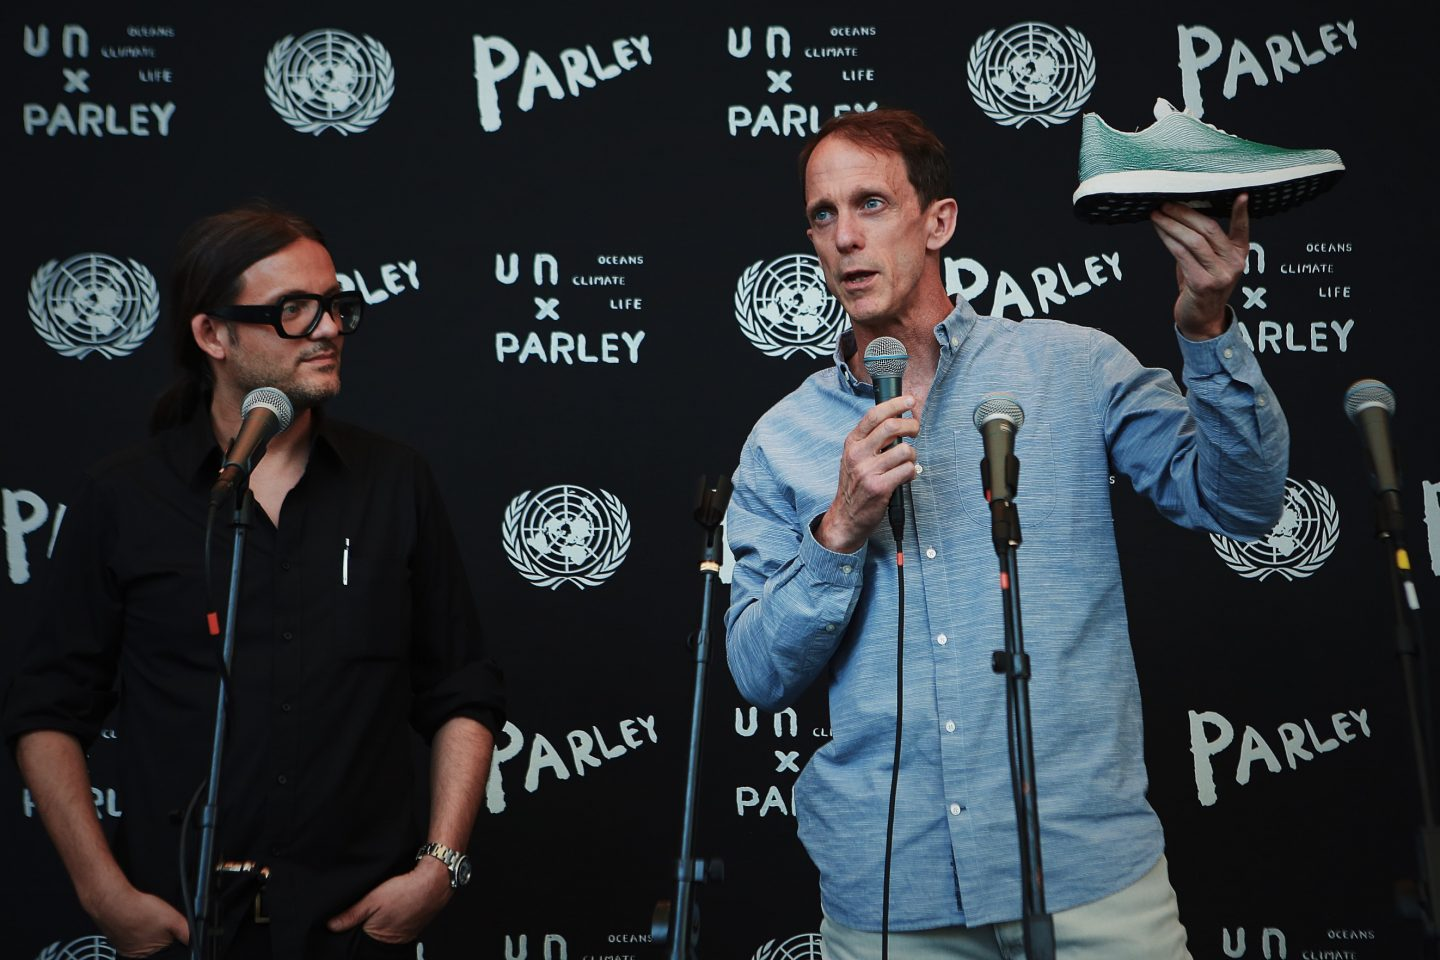 Eric Liedtke showcasing the first adidas Parley shoe standing next to Cyril Gutsch, founder of Parley for the oceans | Sustainability